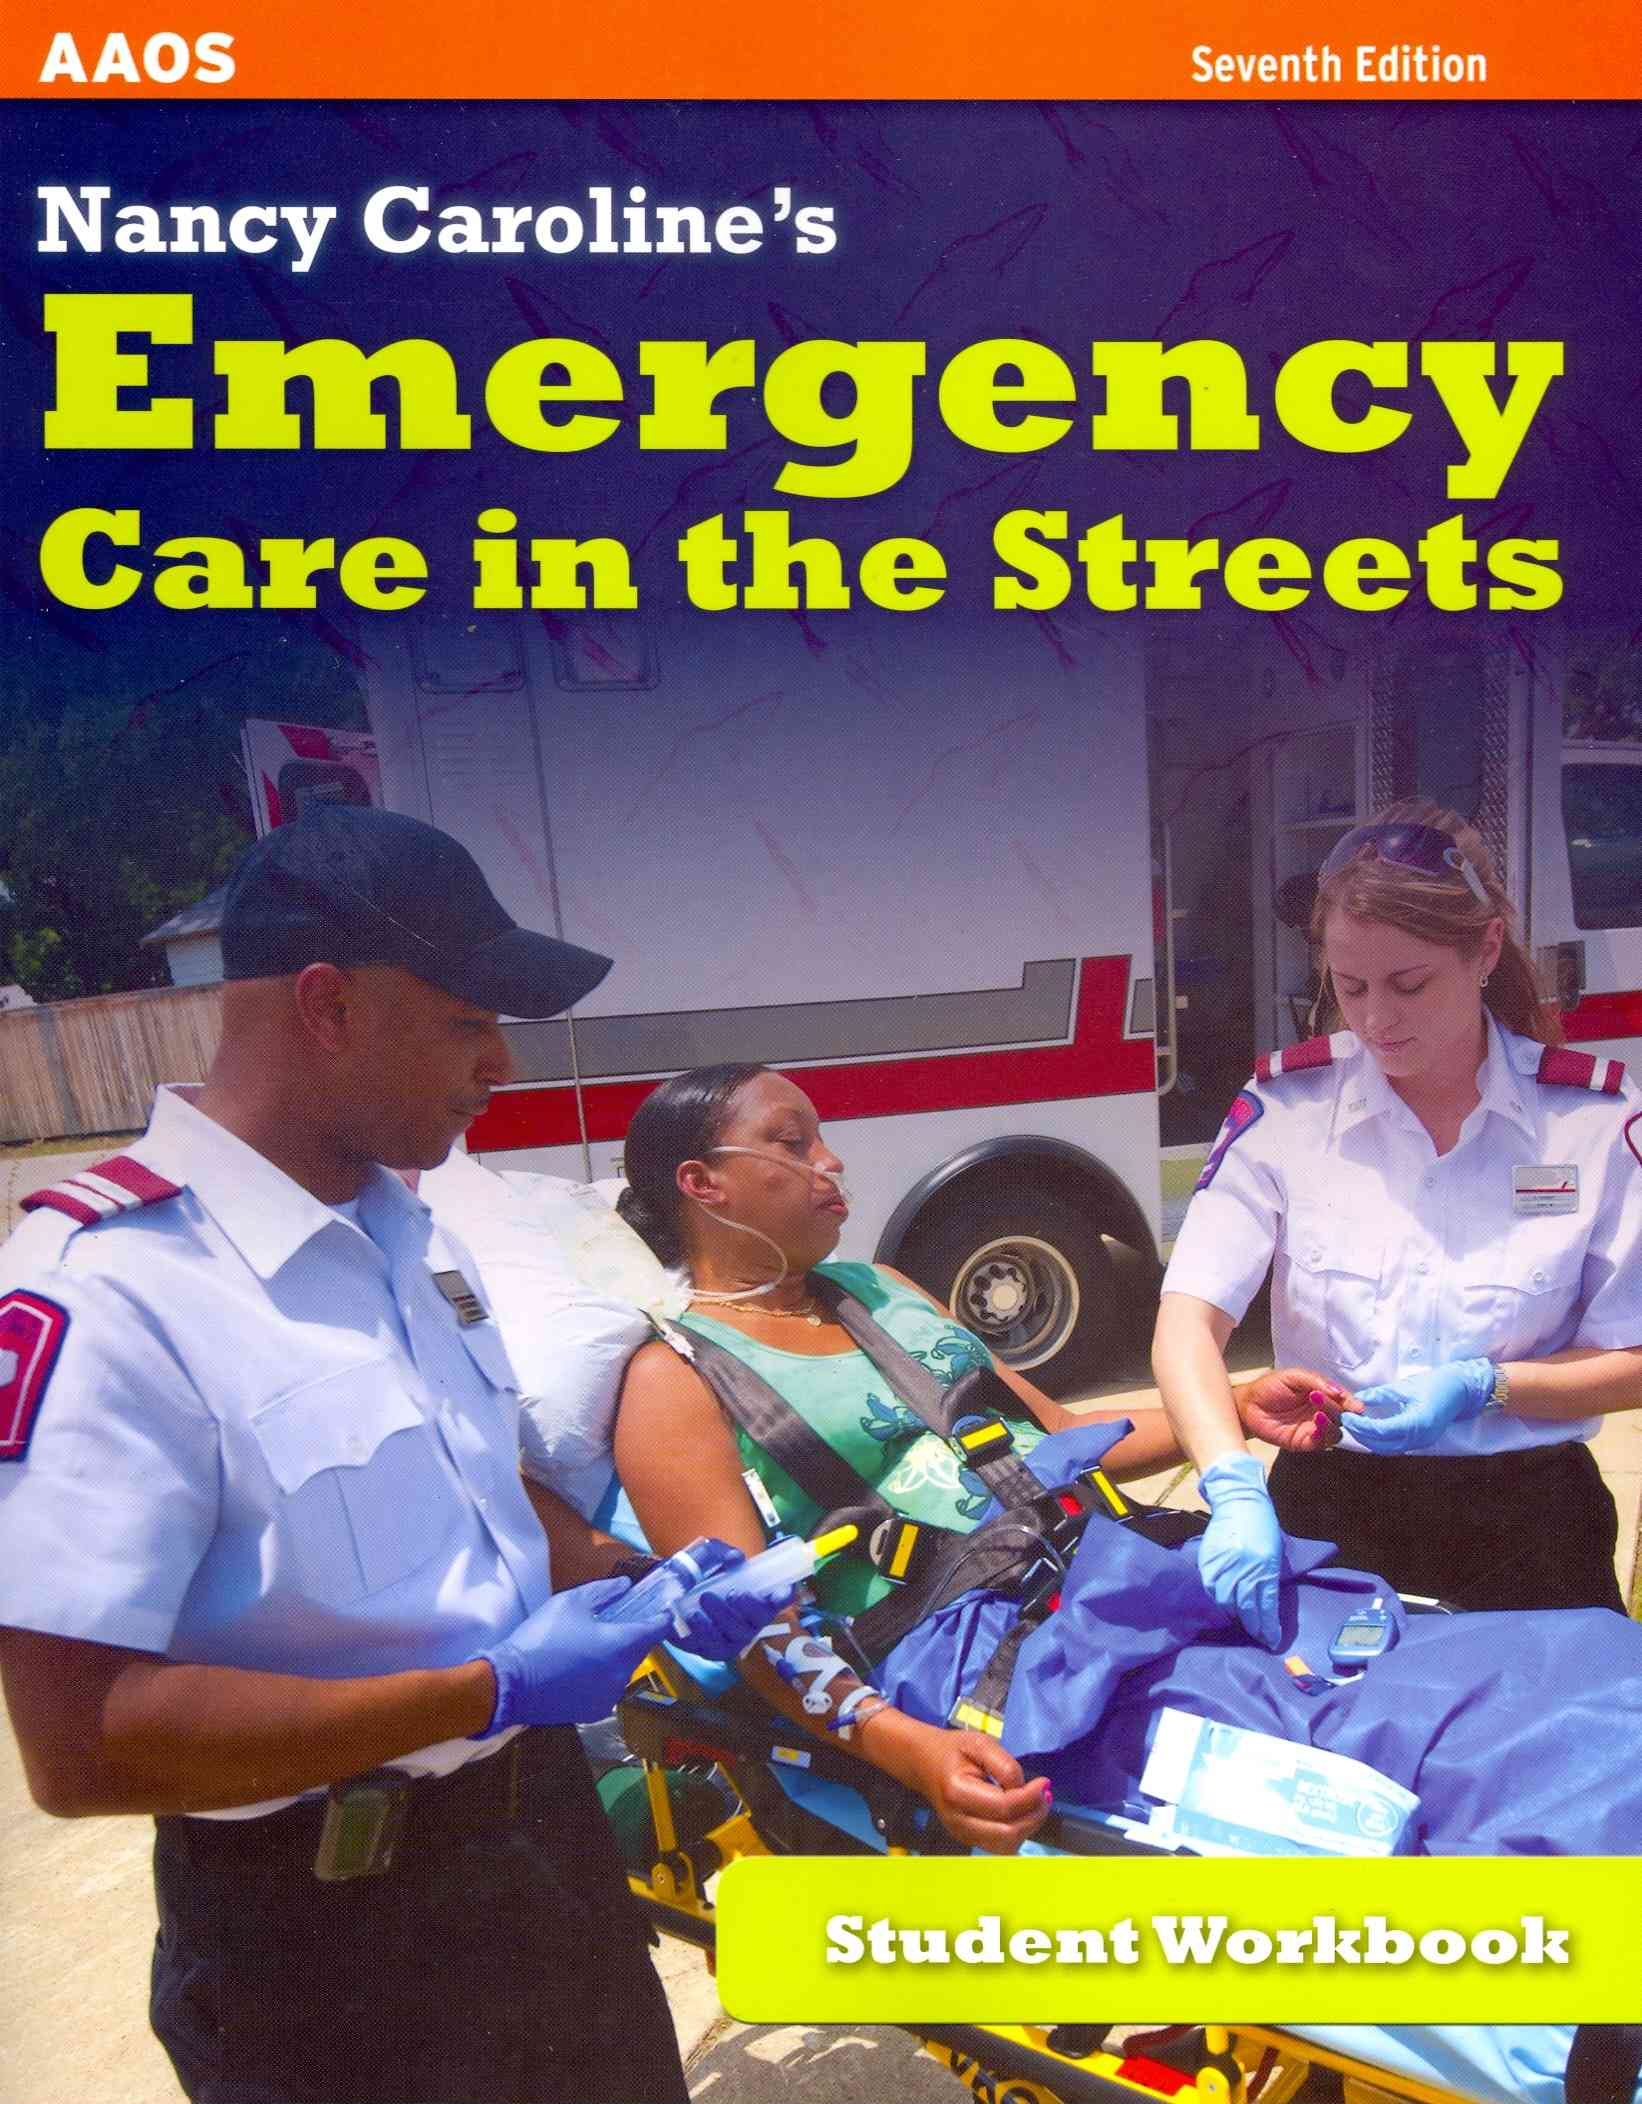 Nancy Caroline's Emergency Care in the Streets By Aaos American Academy of Orthopaedic S/ Elling, Bob